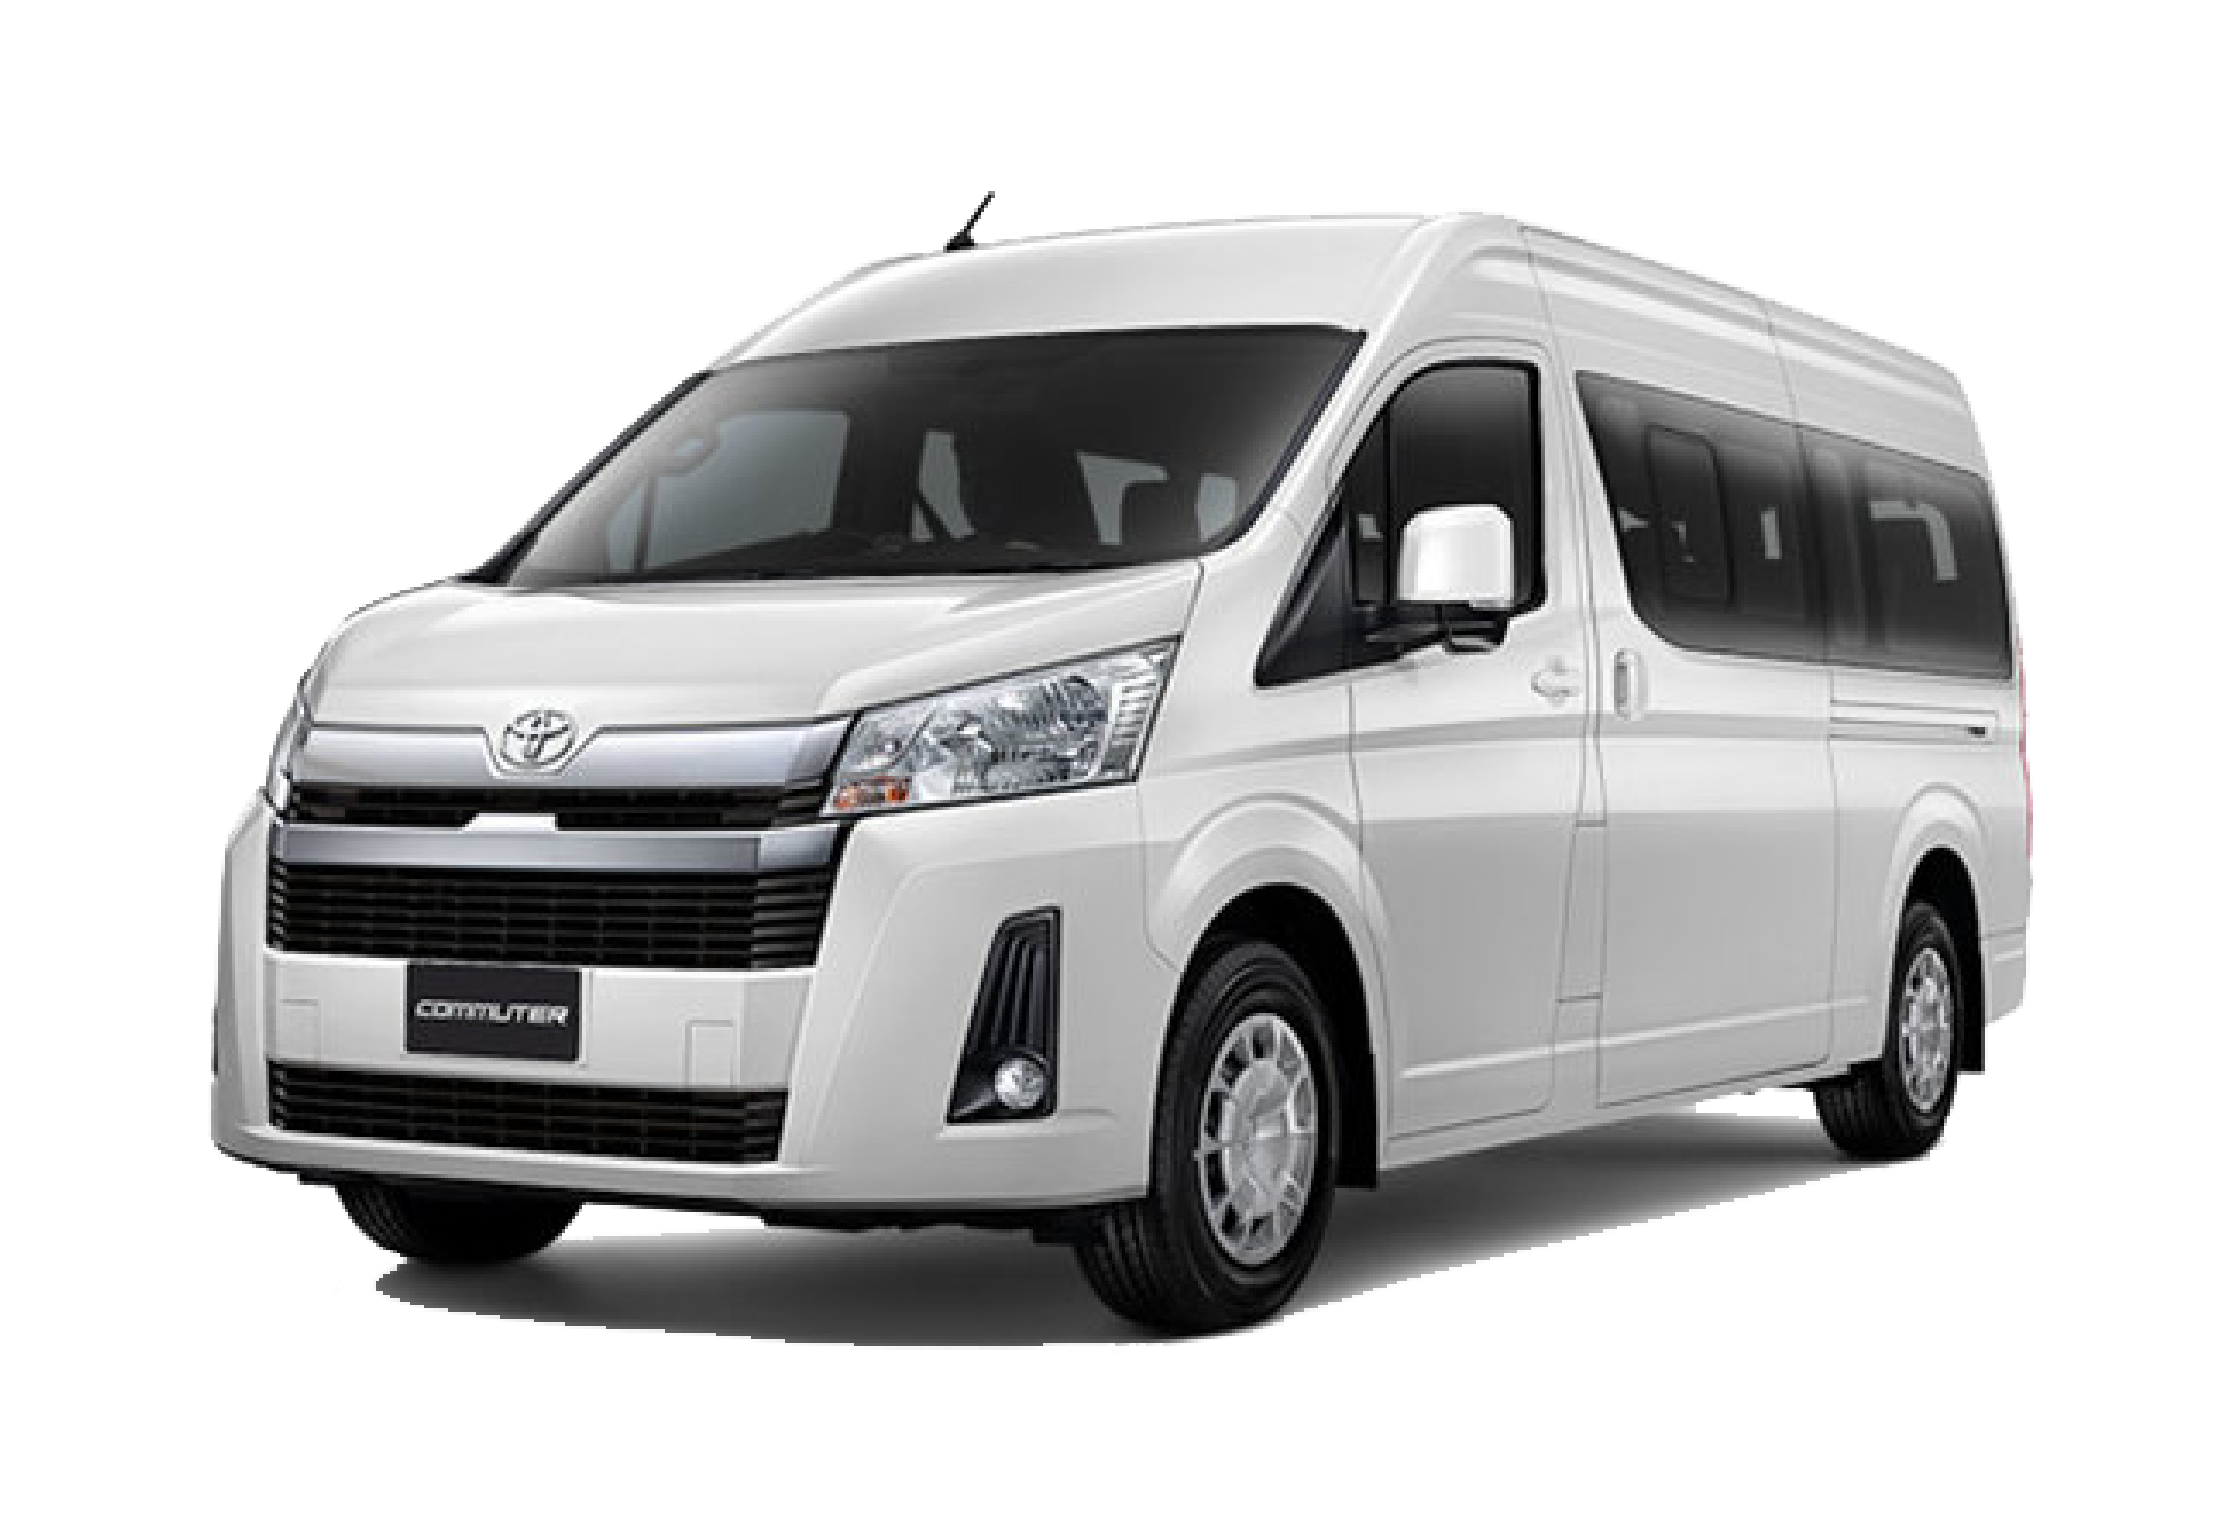 MICRO BUS CLASS COMMUTER2019 เนื้อหา